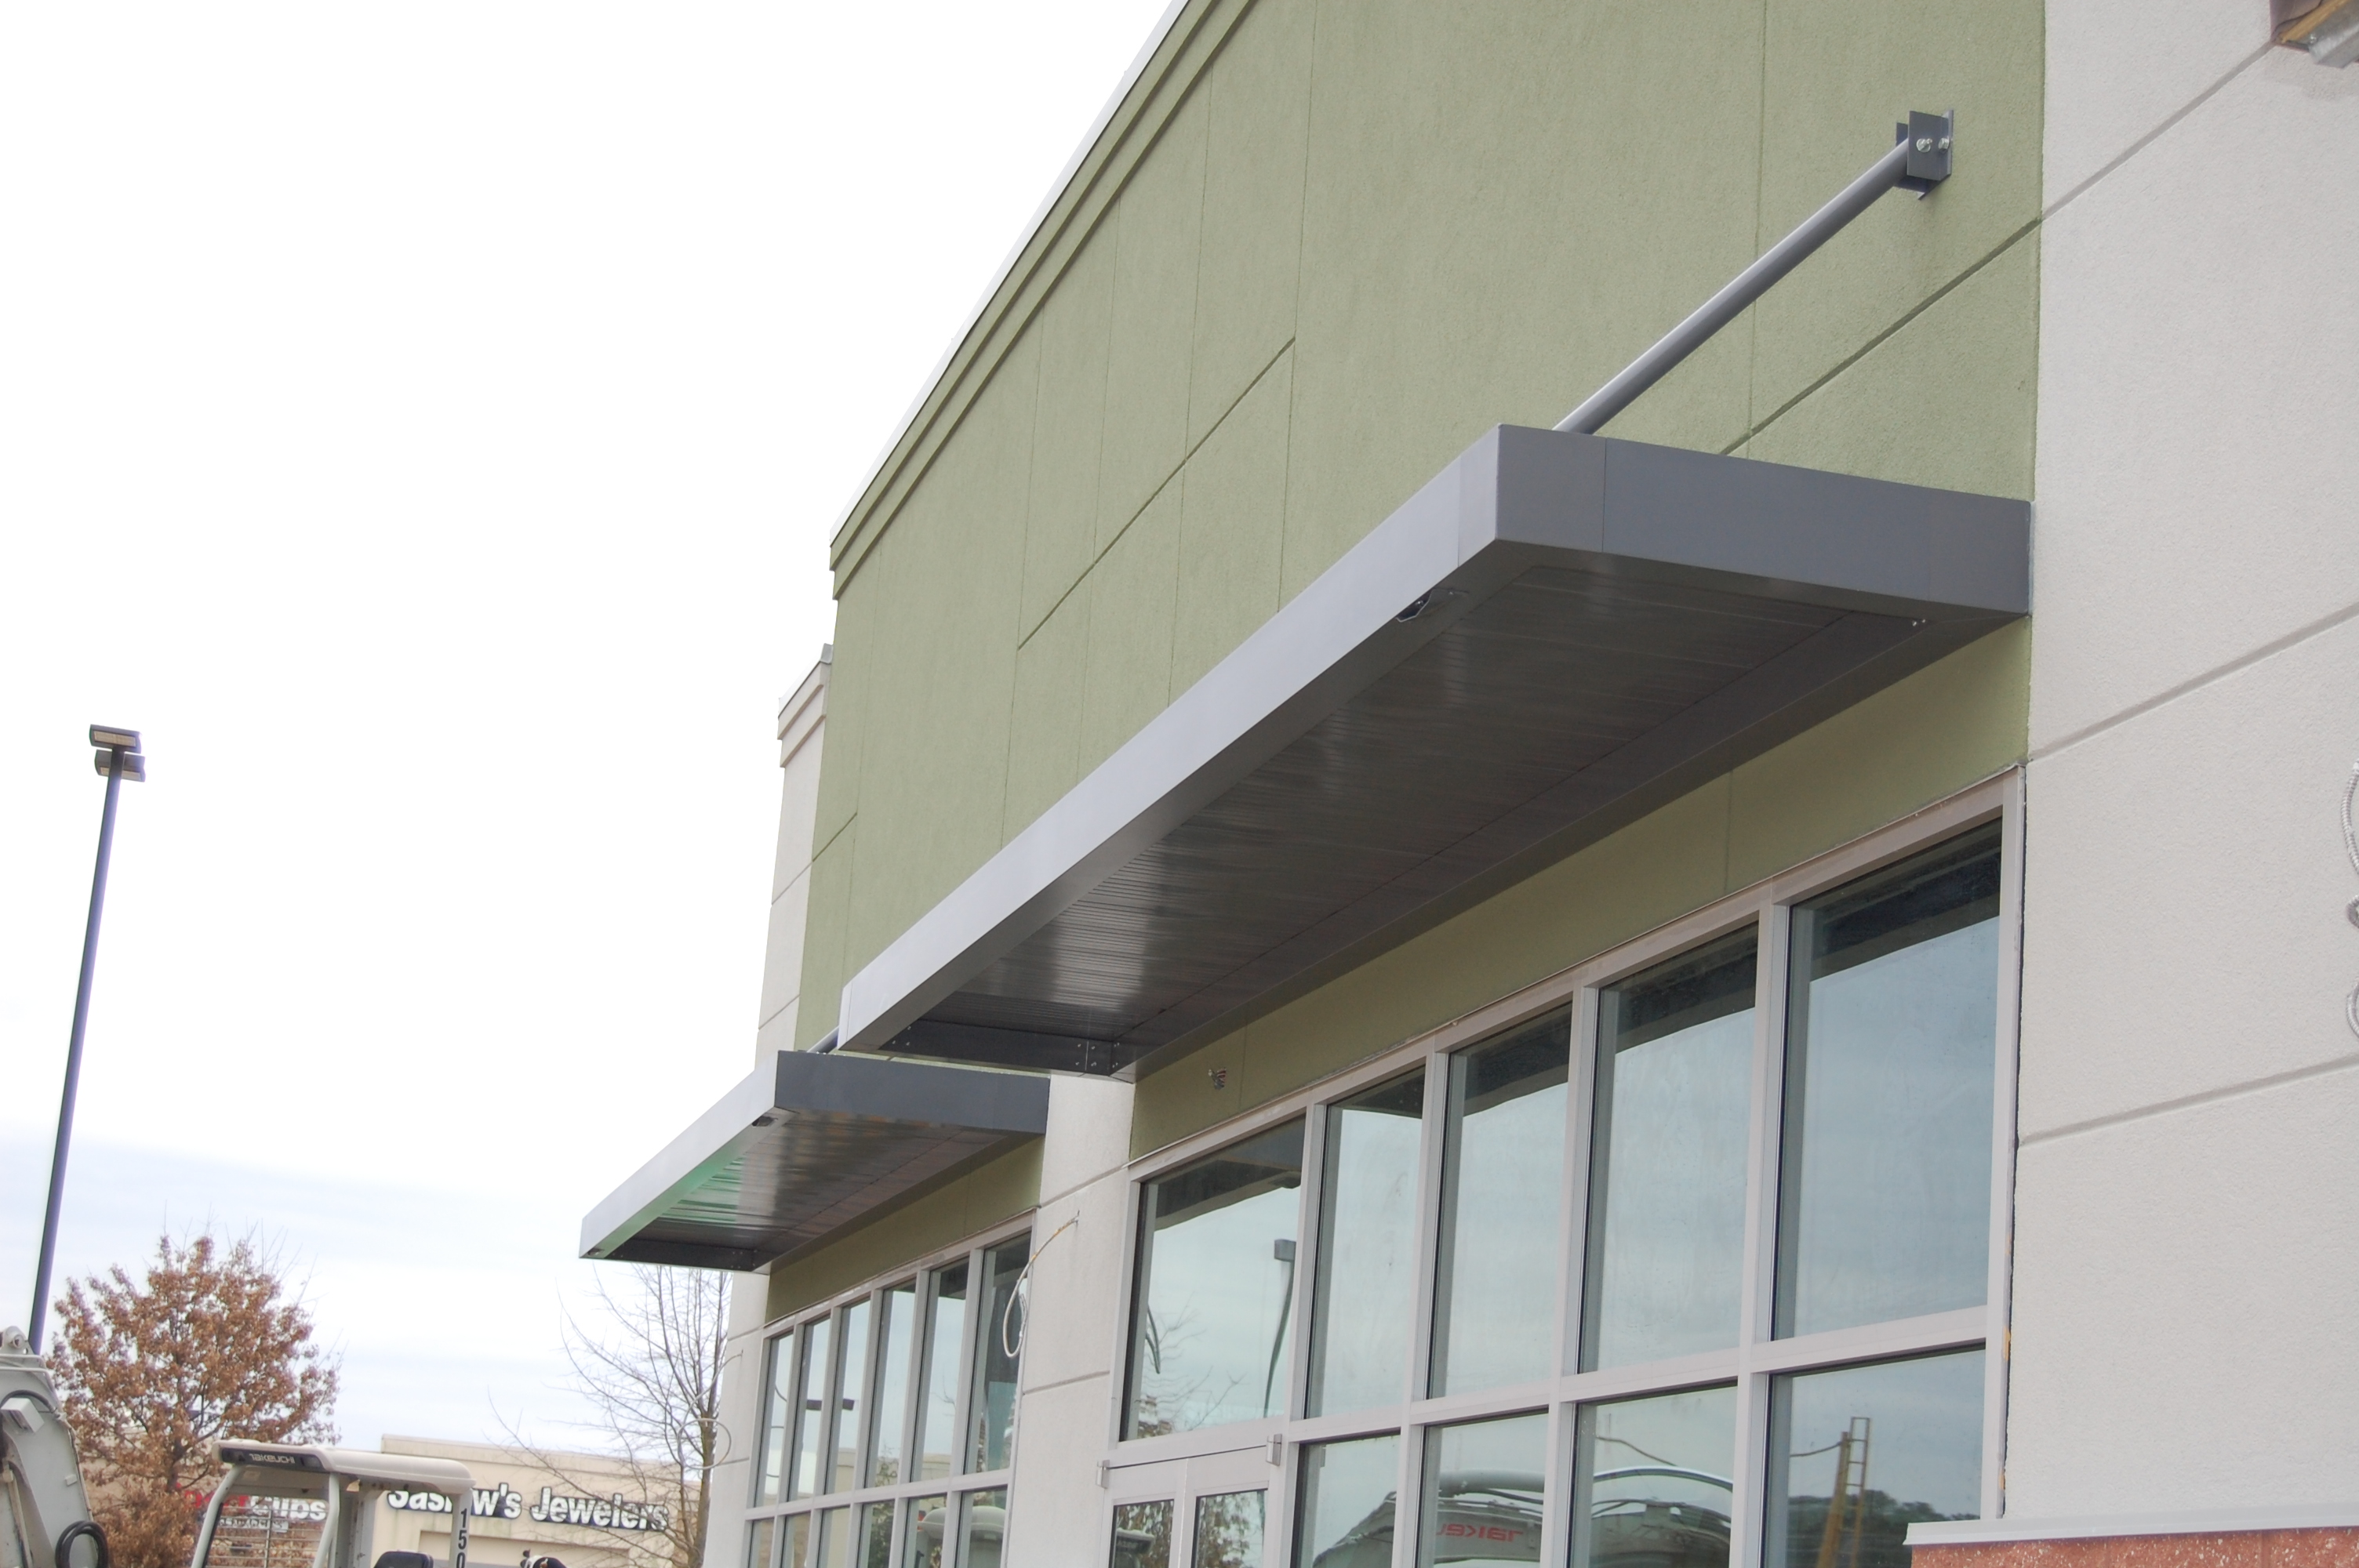 extruded aluminum canopies - csc awnings inc.